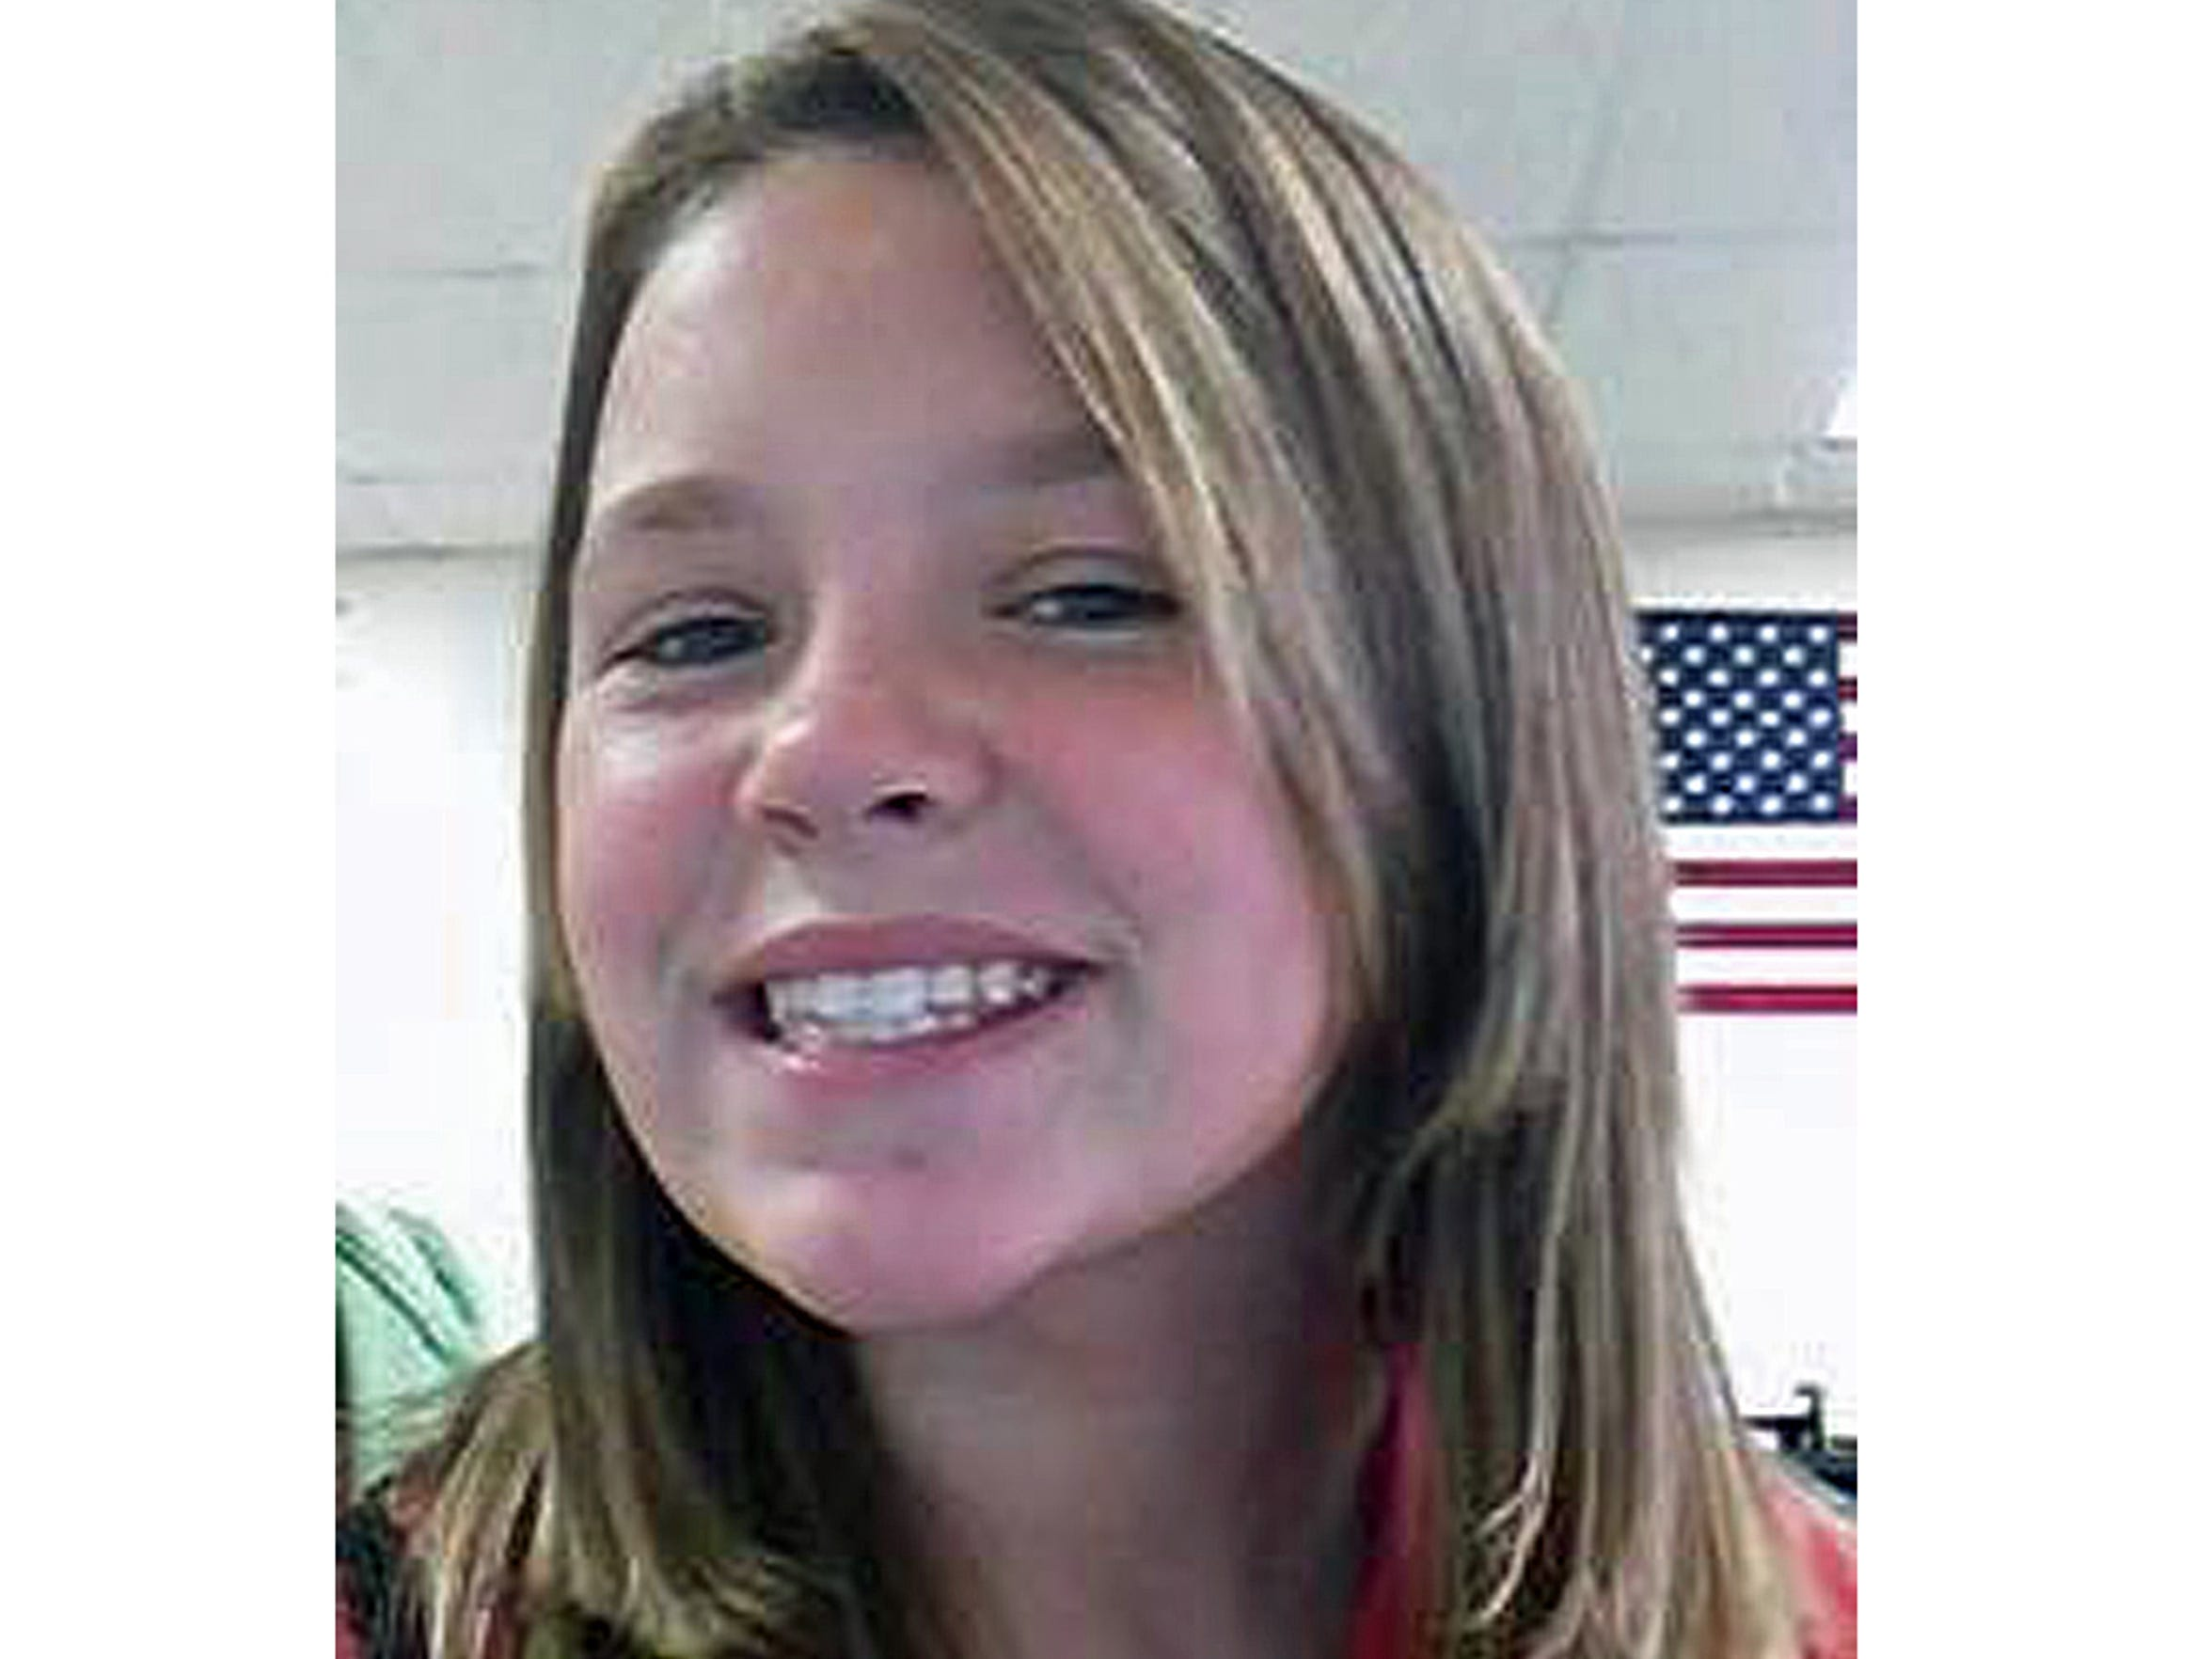 Hailey Dunn was a middle school student when she went missing.